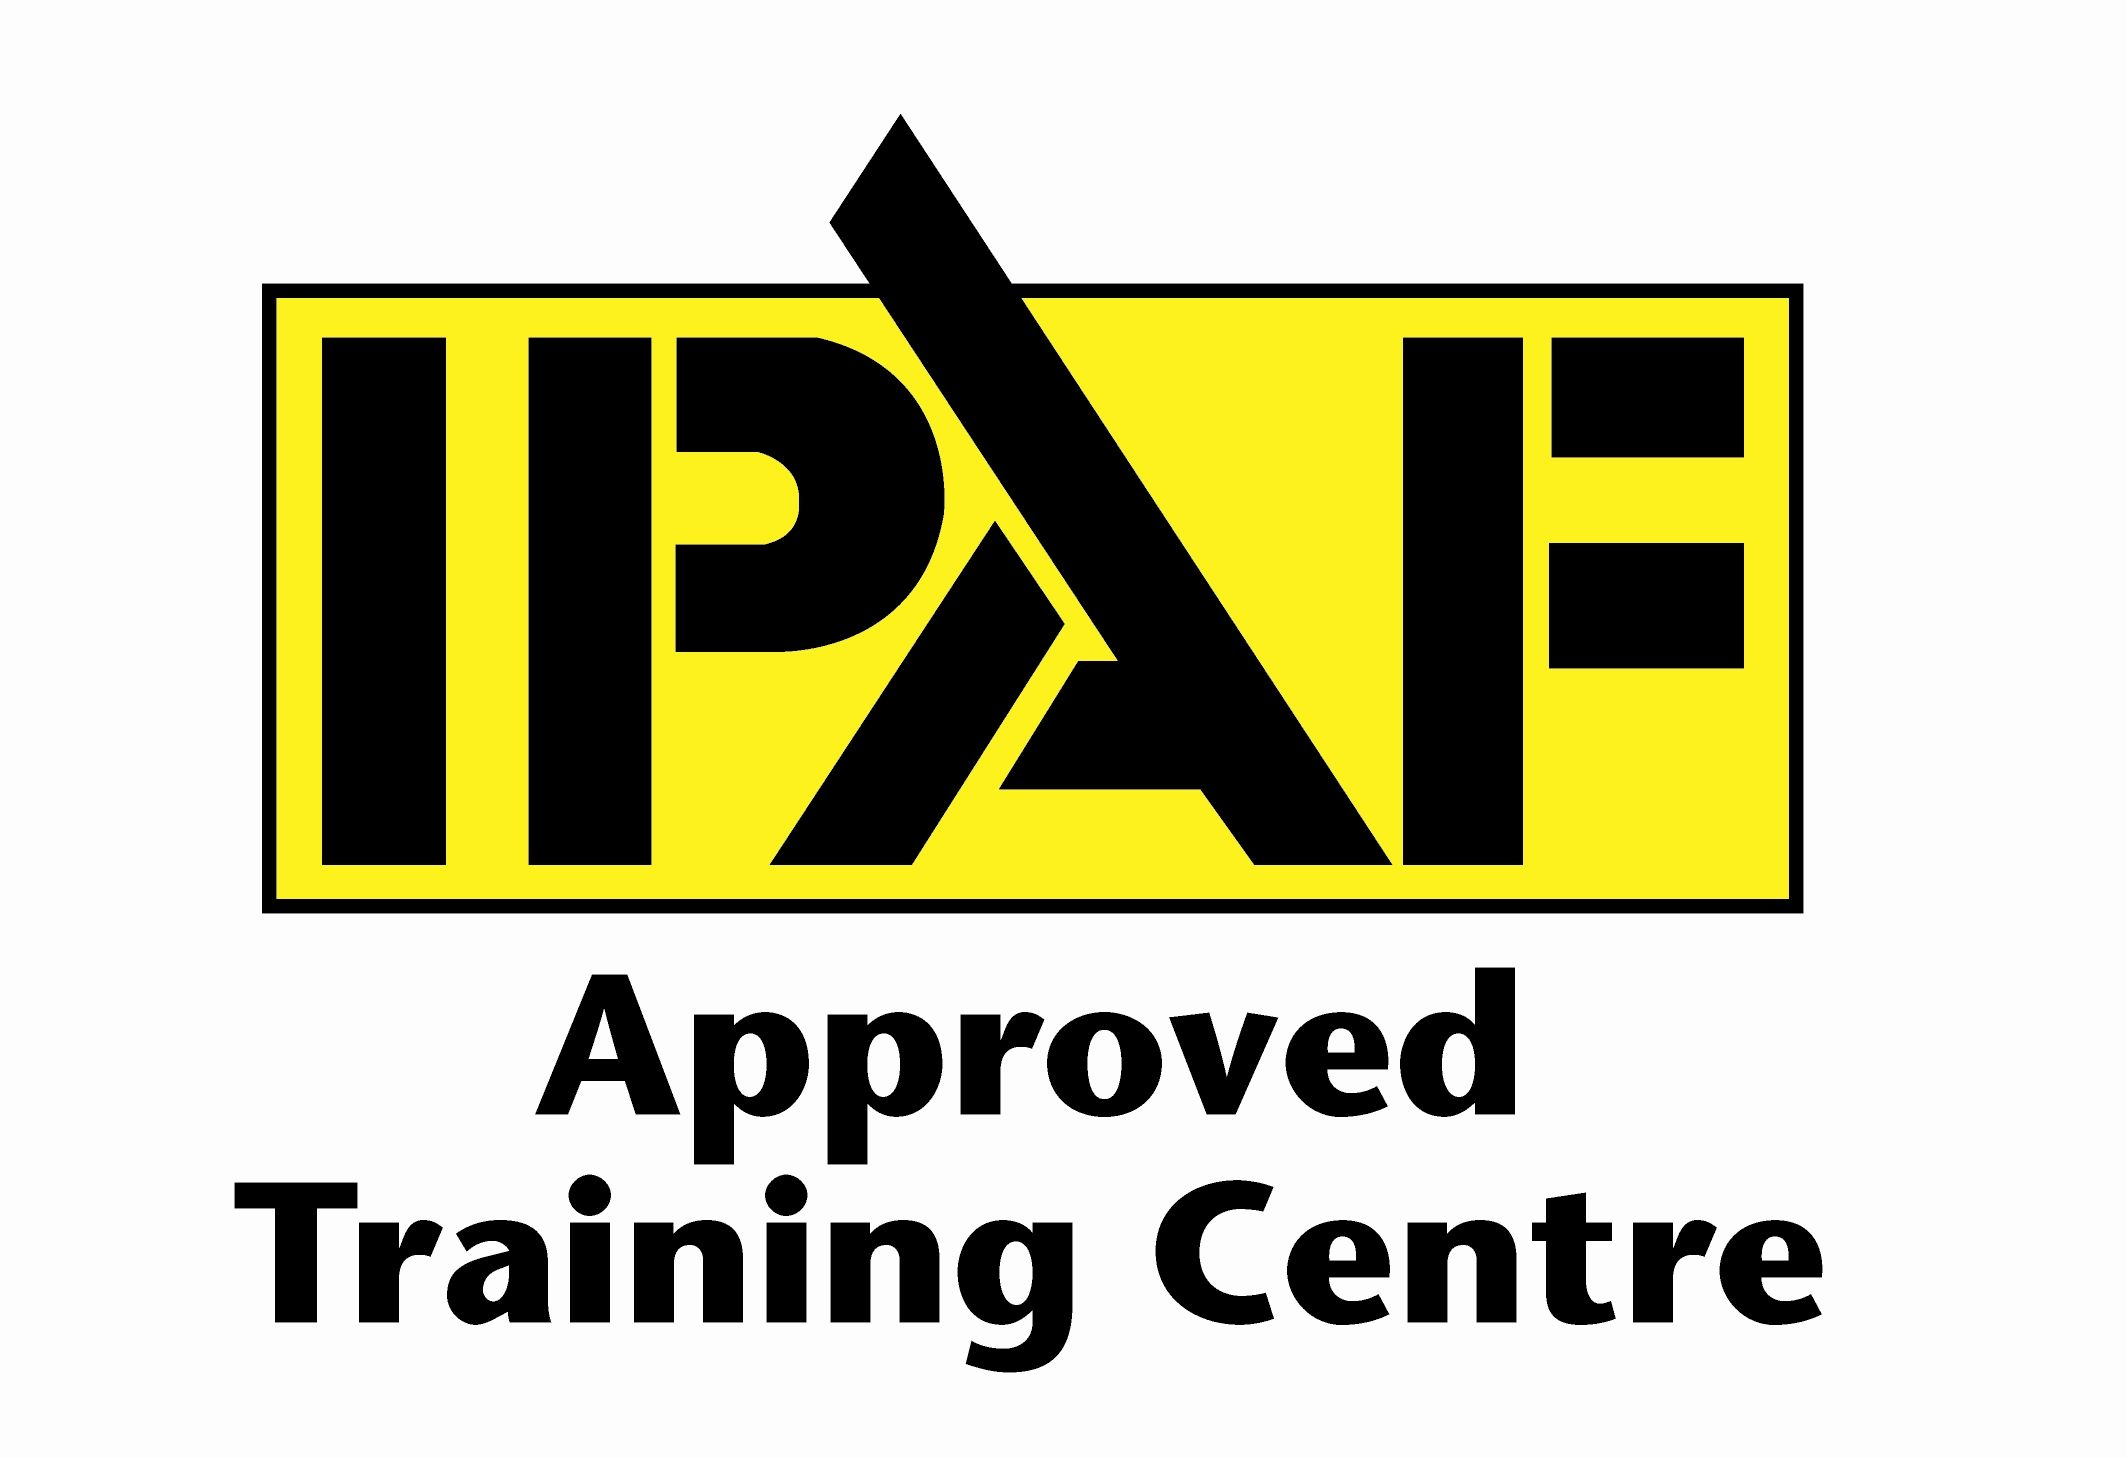 Maps ipaf approved training centre Sussex